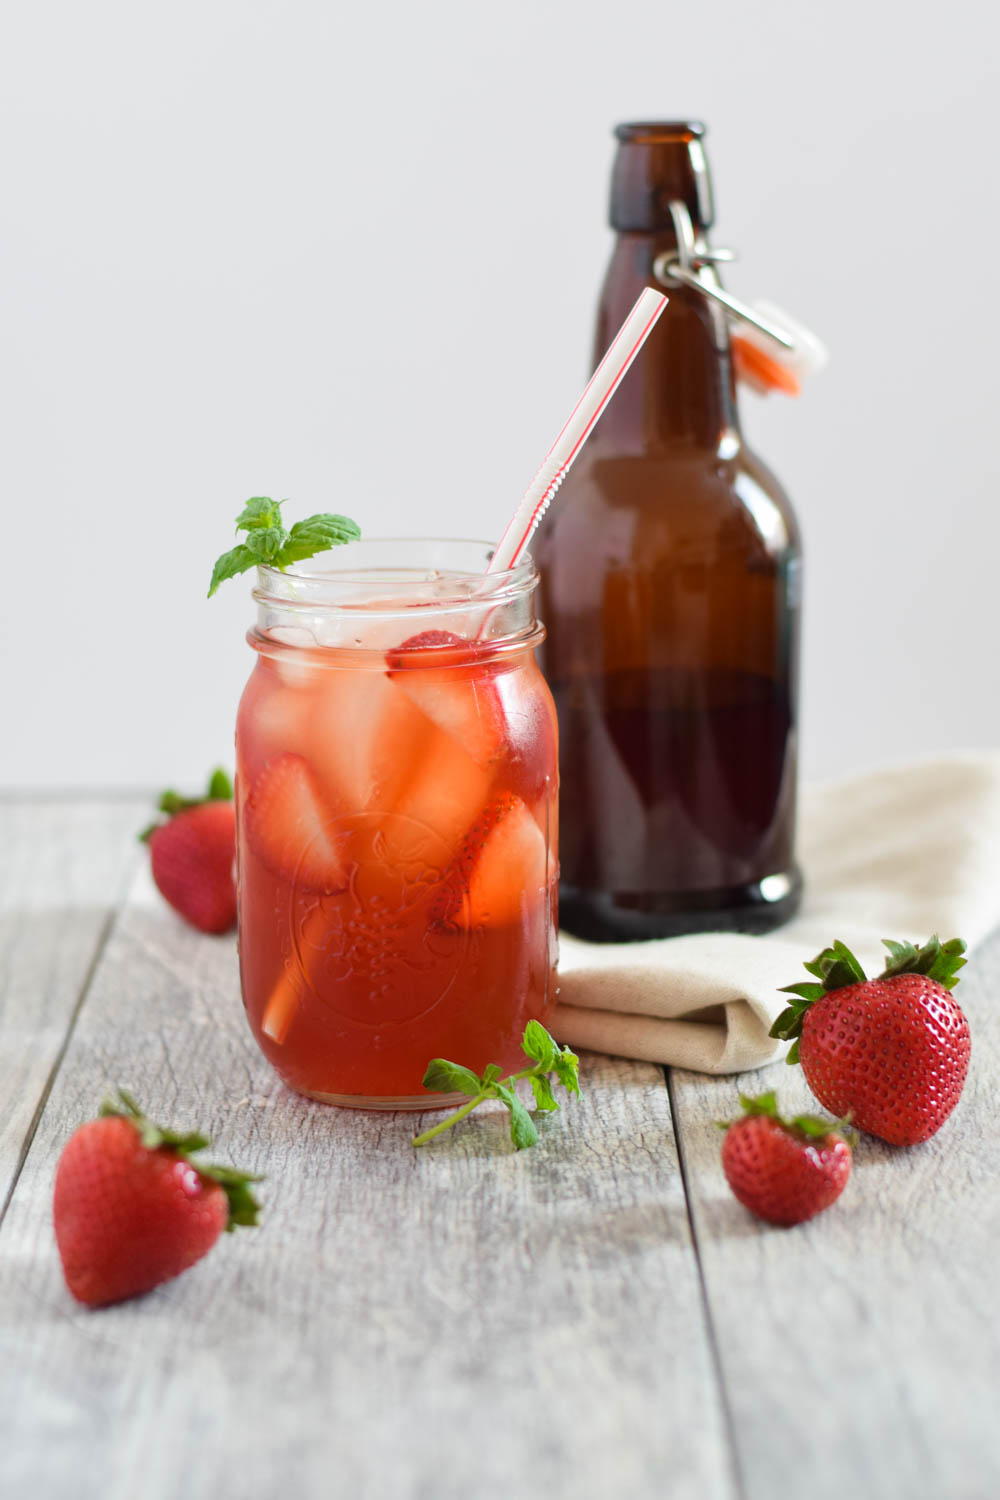 How to make kombucha at home - homemade strawberry kombucha made easy!